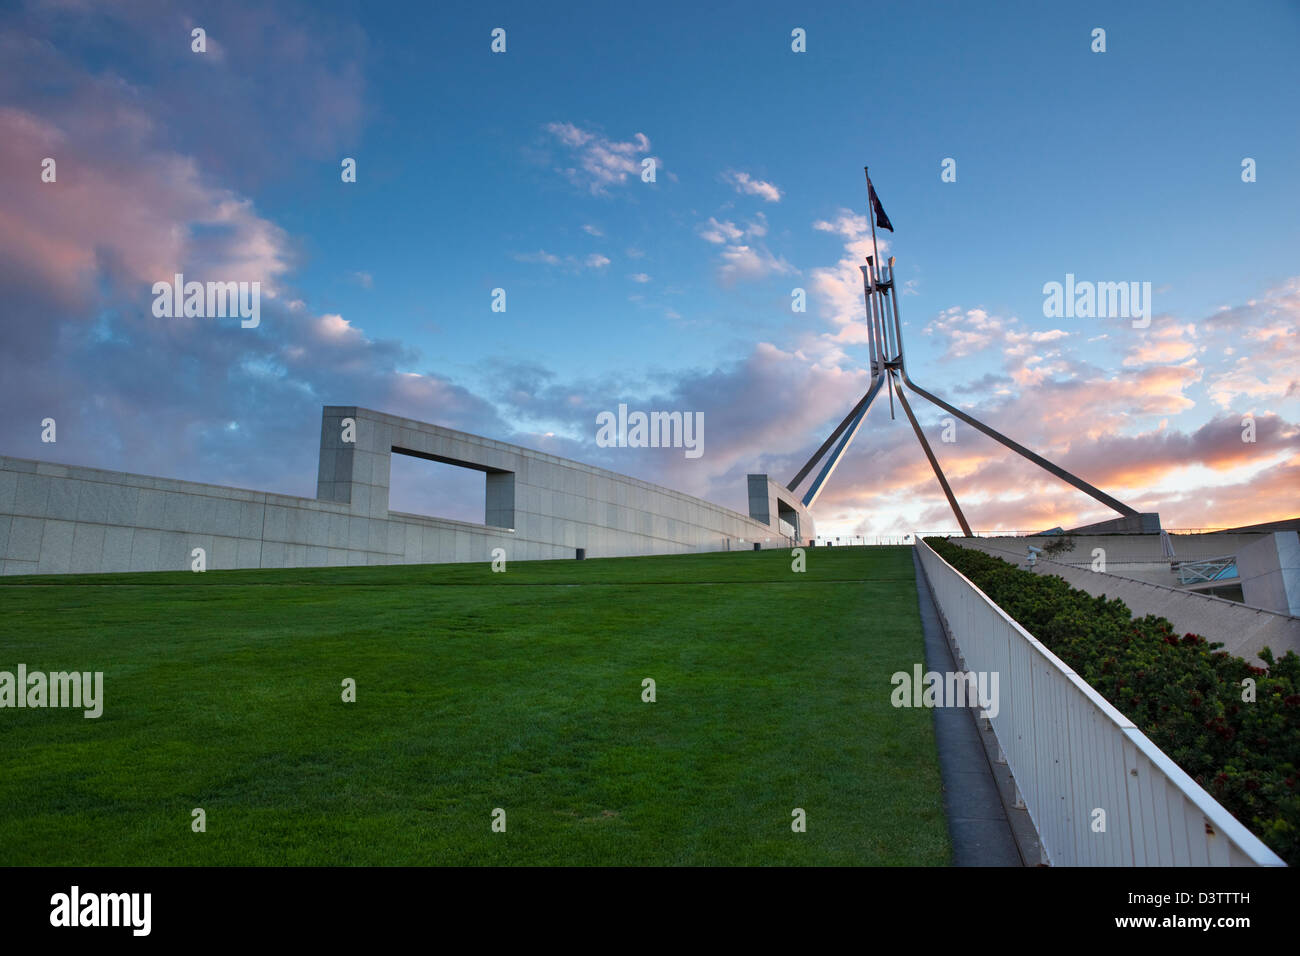 The rooftop lawn and flagpole of Parliament House at dusk. Canberra, Australian Capital Territory (ACT), Australia Stock Photo